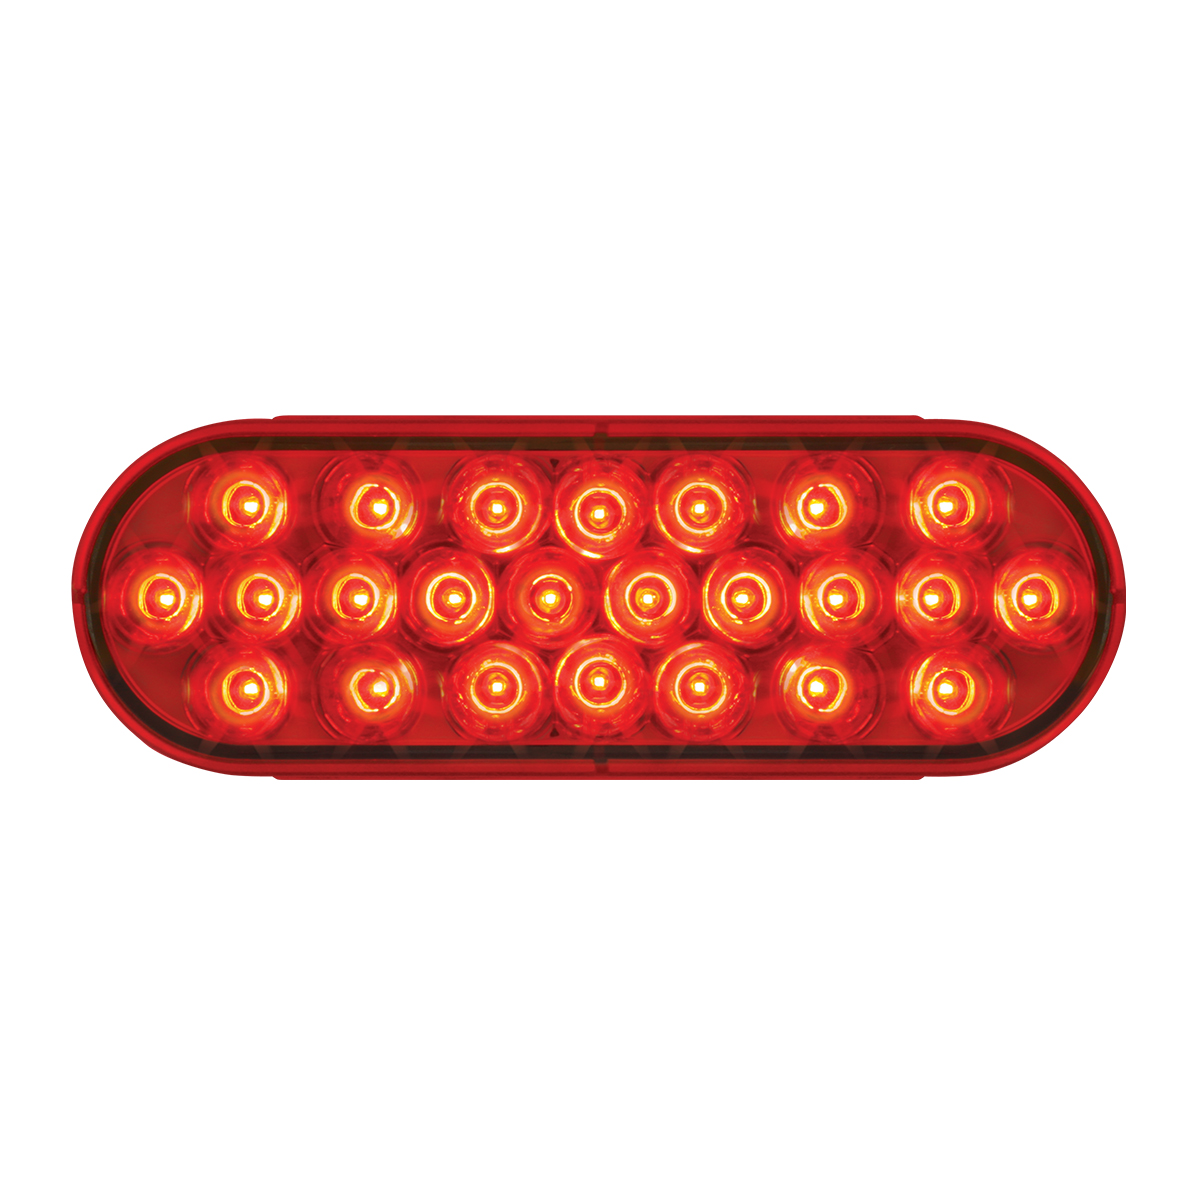 Oval Synchronous/Alternating Pearl LED Strobe Light in Red/Red